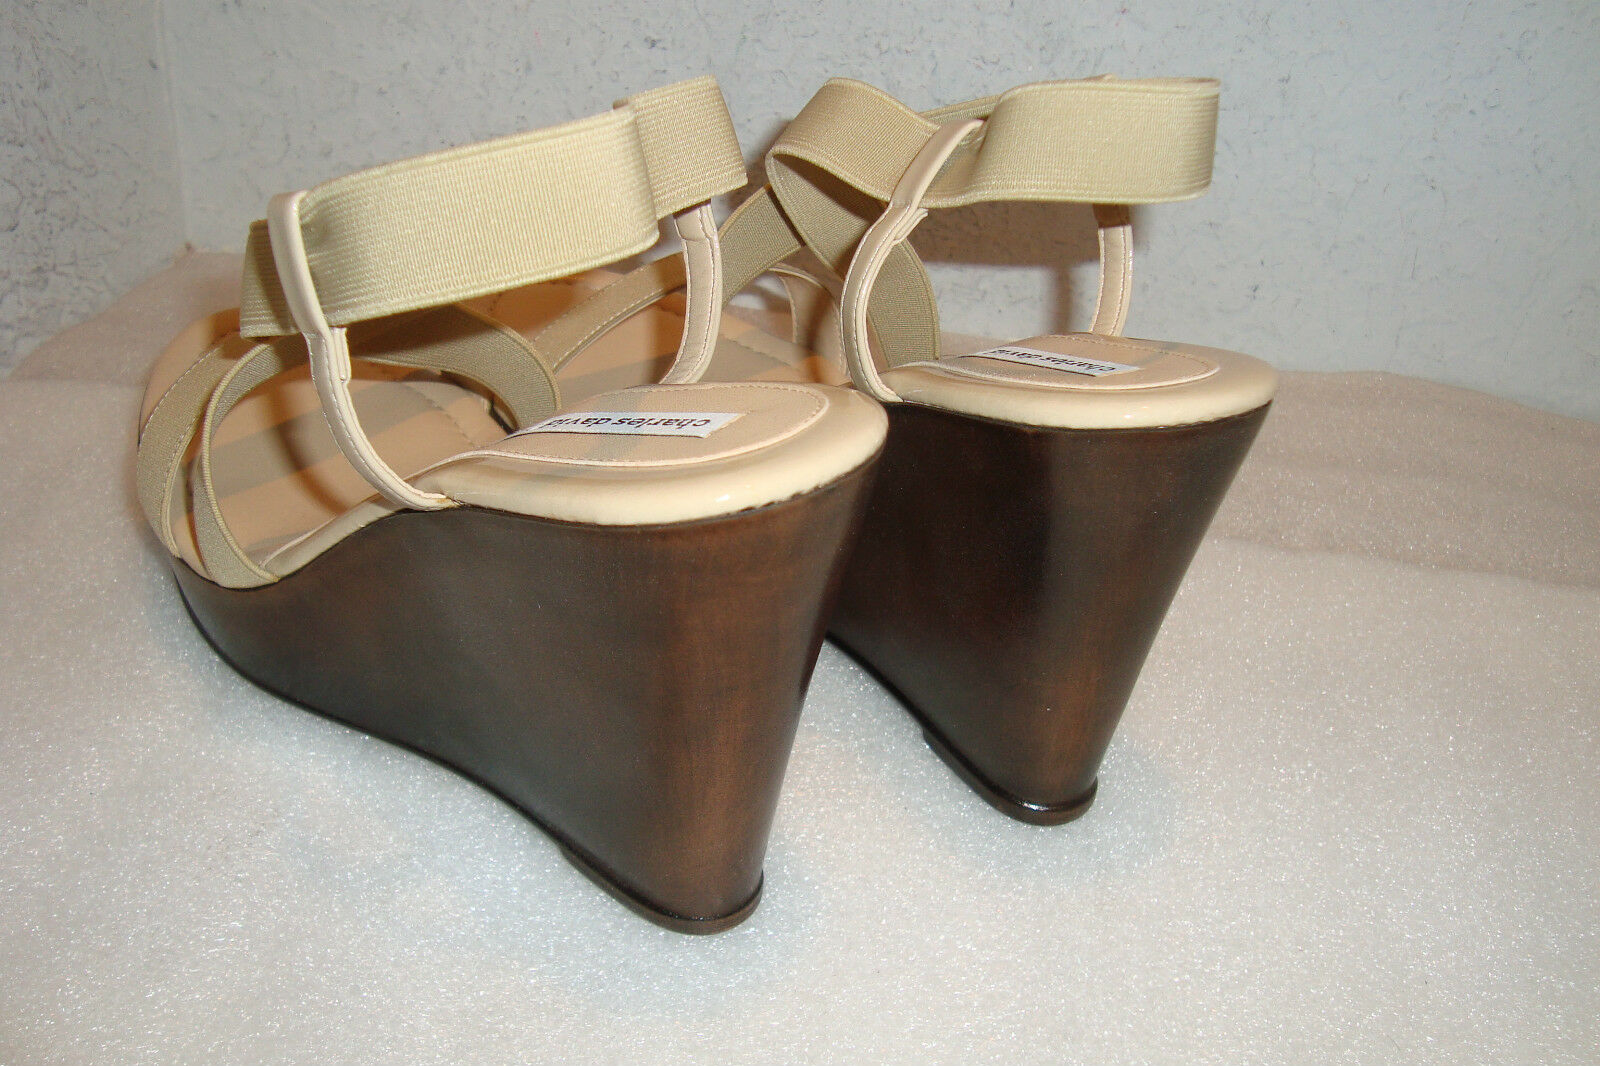 Charles David Damenschuhe Sandales NWOB Camel Stretch Wedge Sandales Damenschuhe Schuhes 10 MED NEW 969862